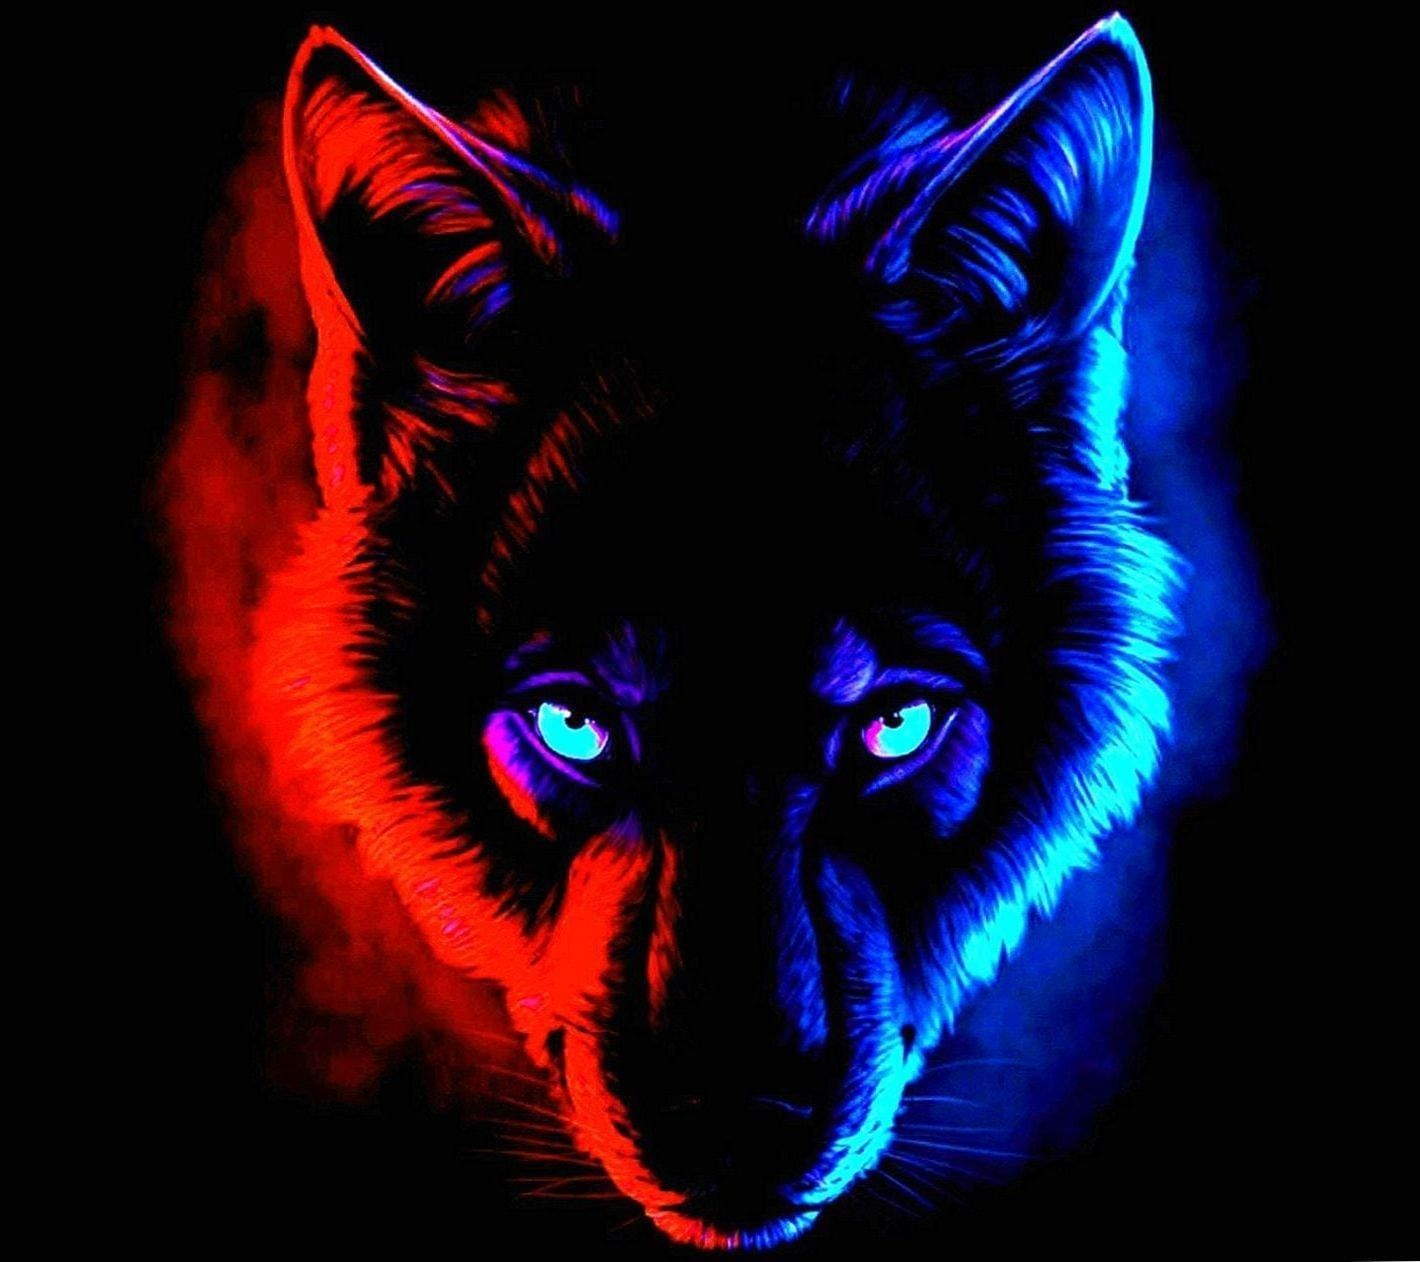 Blue And Red Wolf Wallpapers Wolf Wallpapers Pro Kartiny Zhivotnyh Kartiny Zhivopis S Volkami